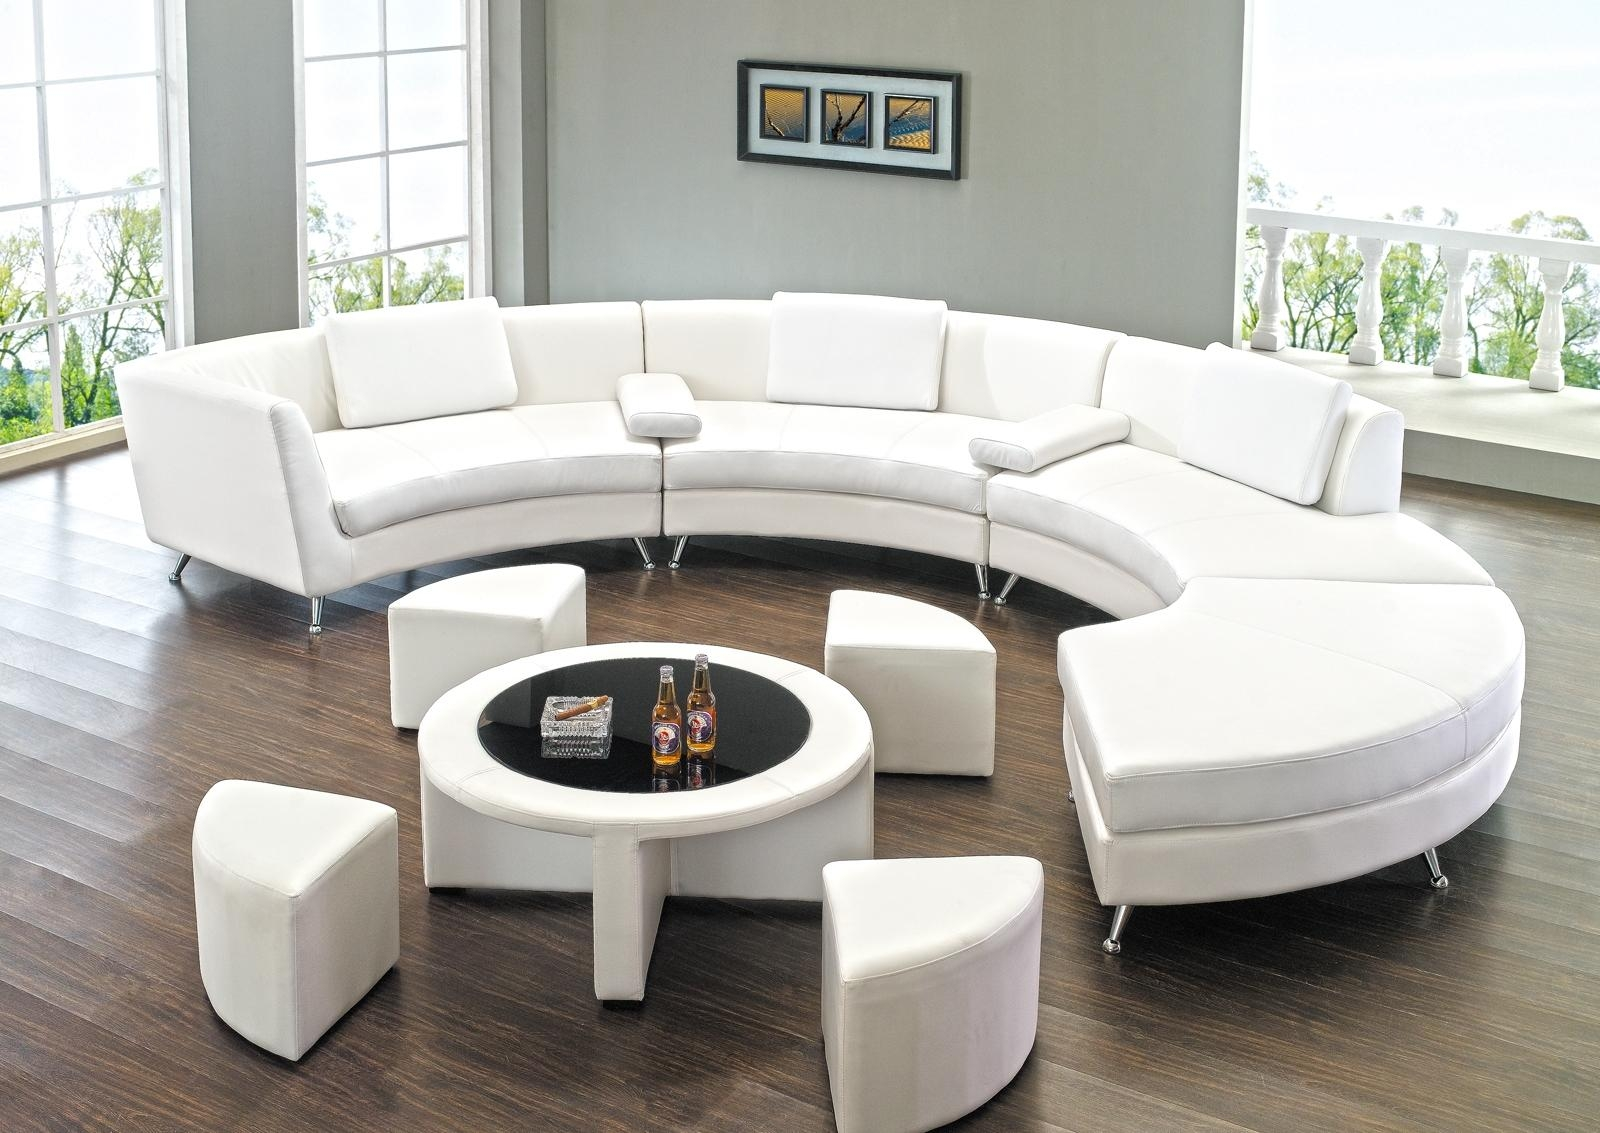 Round Sectional Sofa Leather | Tehranmix Decoration For Wide Sectional Sofa (Image 15 of 20)